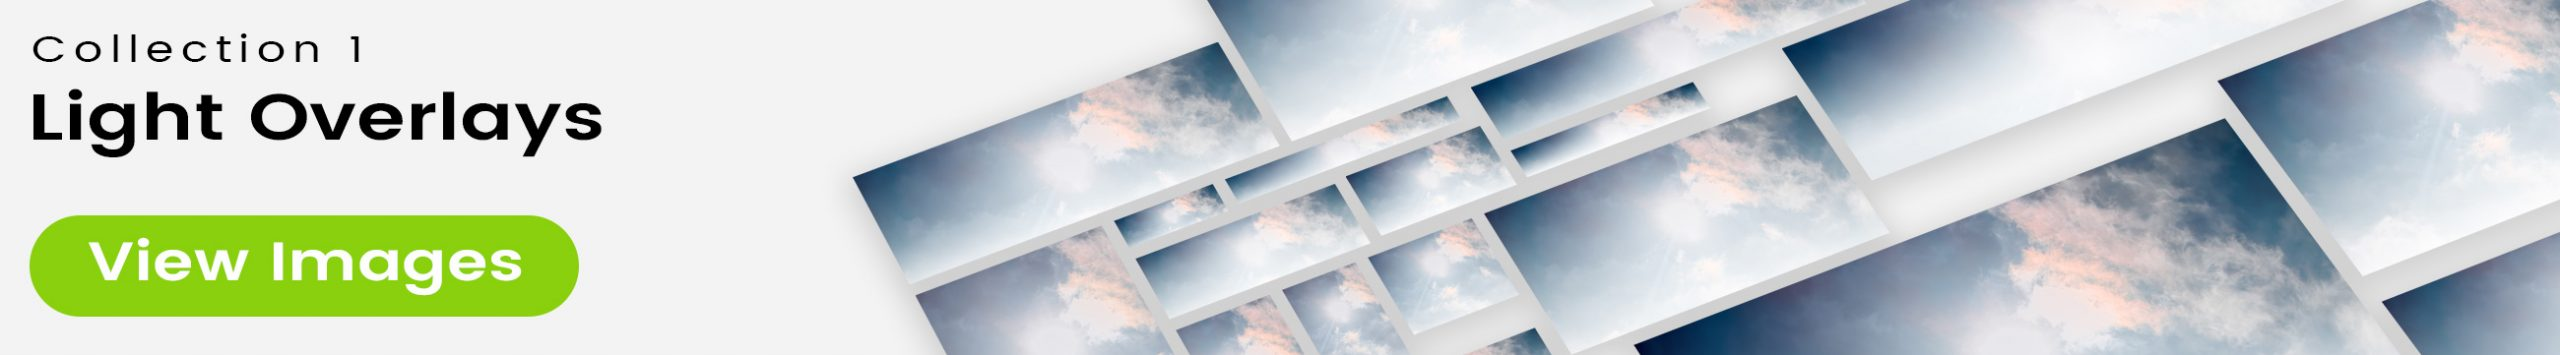 See 25 of 100 free bonus images included with clouds stock image 9461. Collection 1 features a light overlay design.